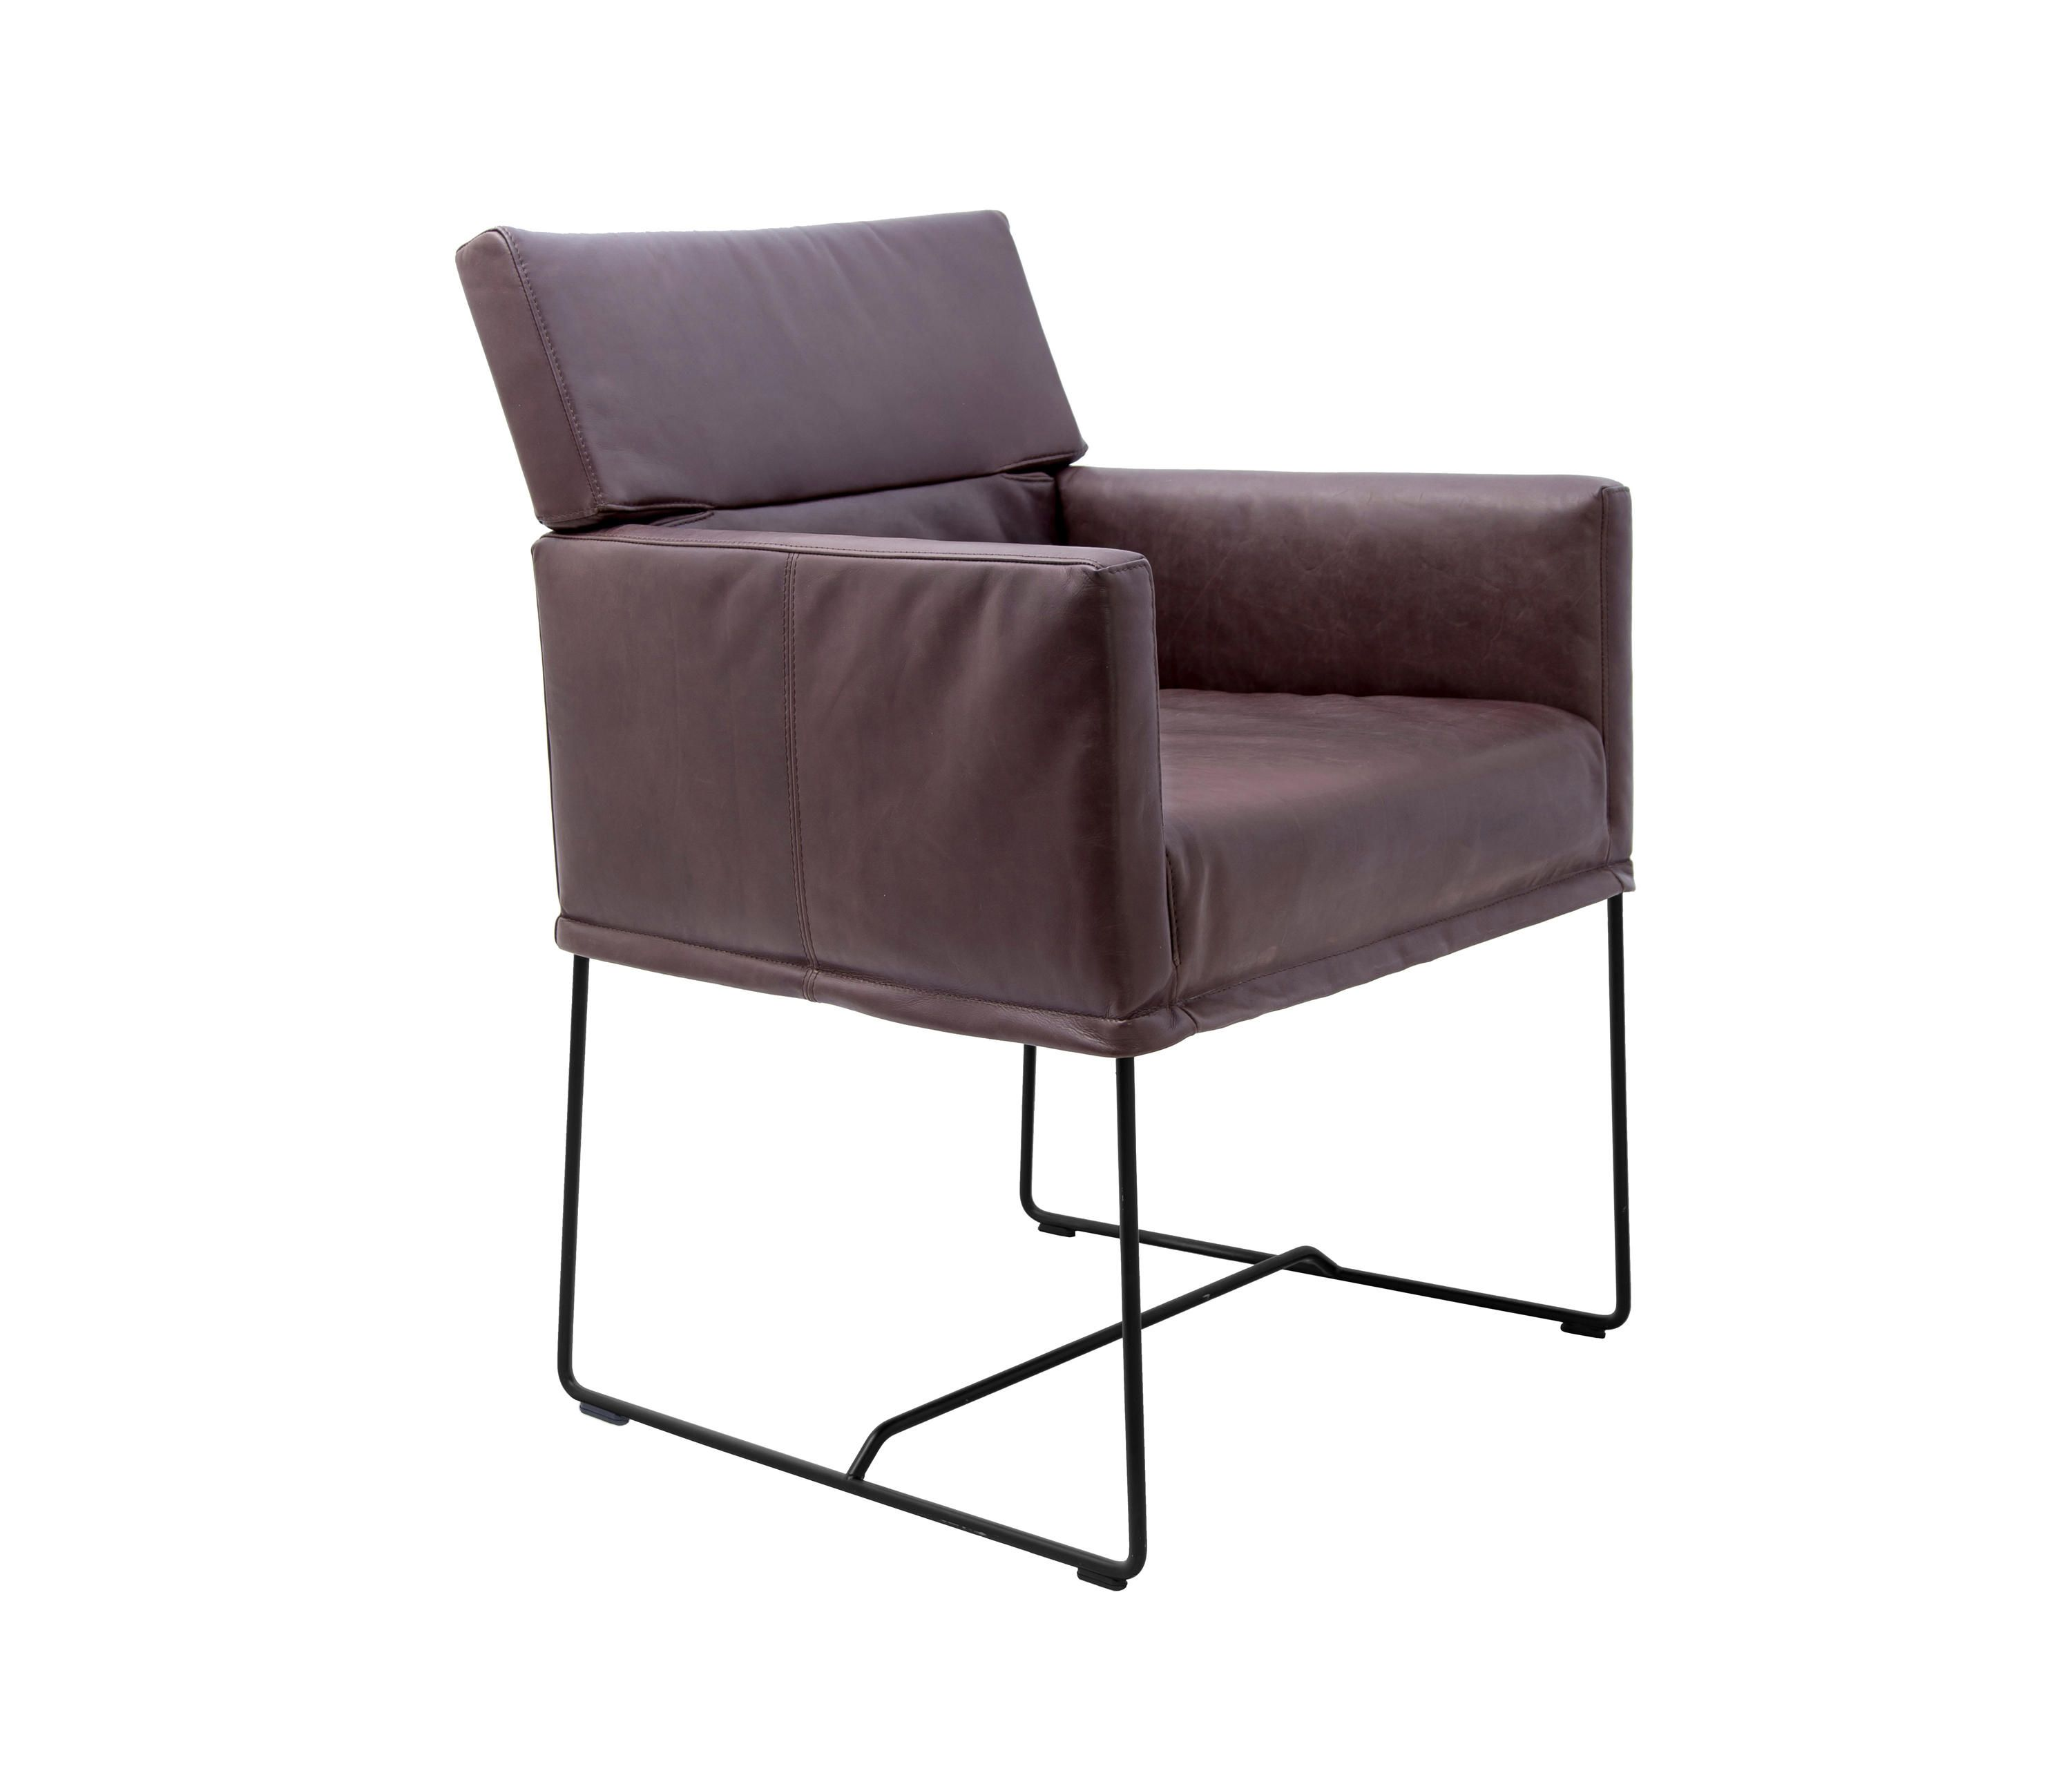 Kff Design Stoelen.Caal Chair By Kff Chairs 123 Nye Mobler Outdoor Chairs